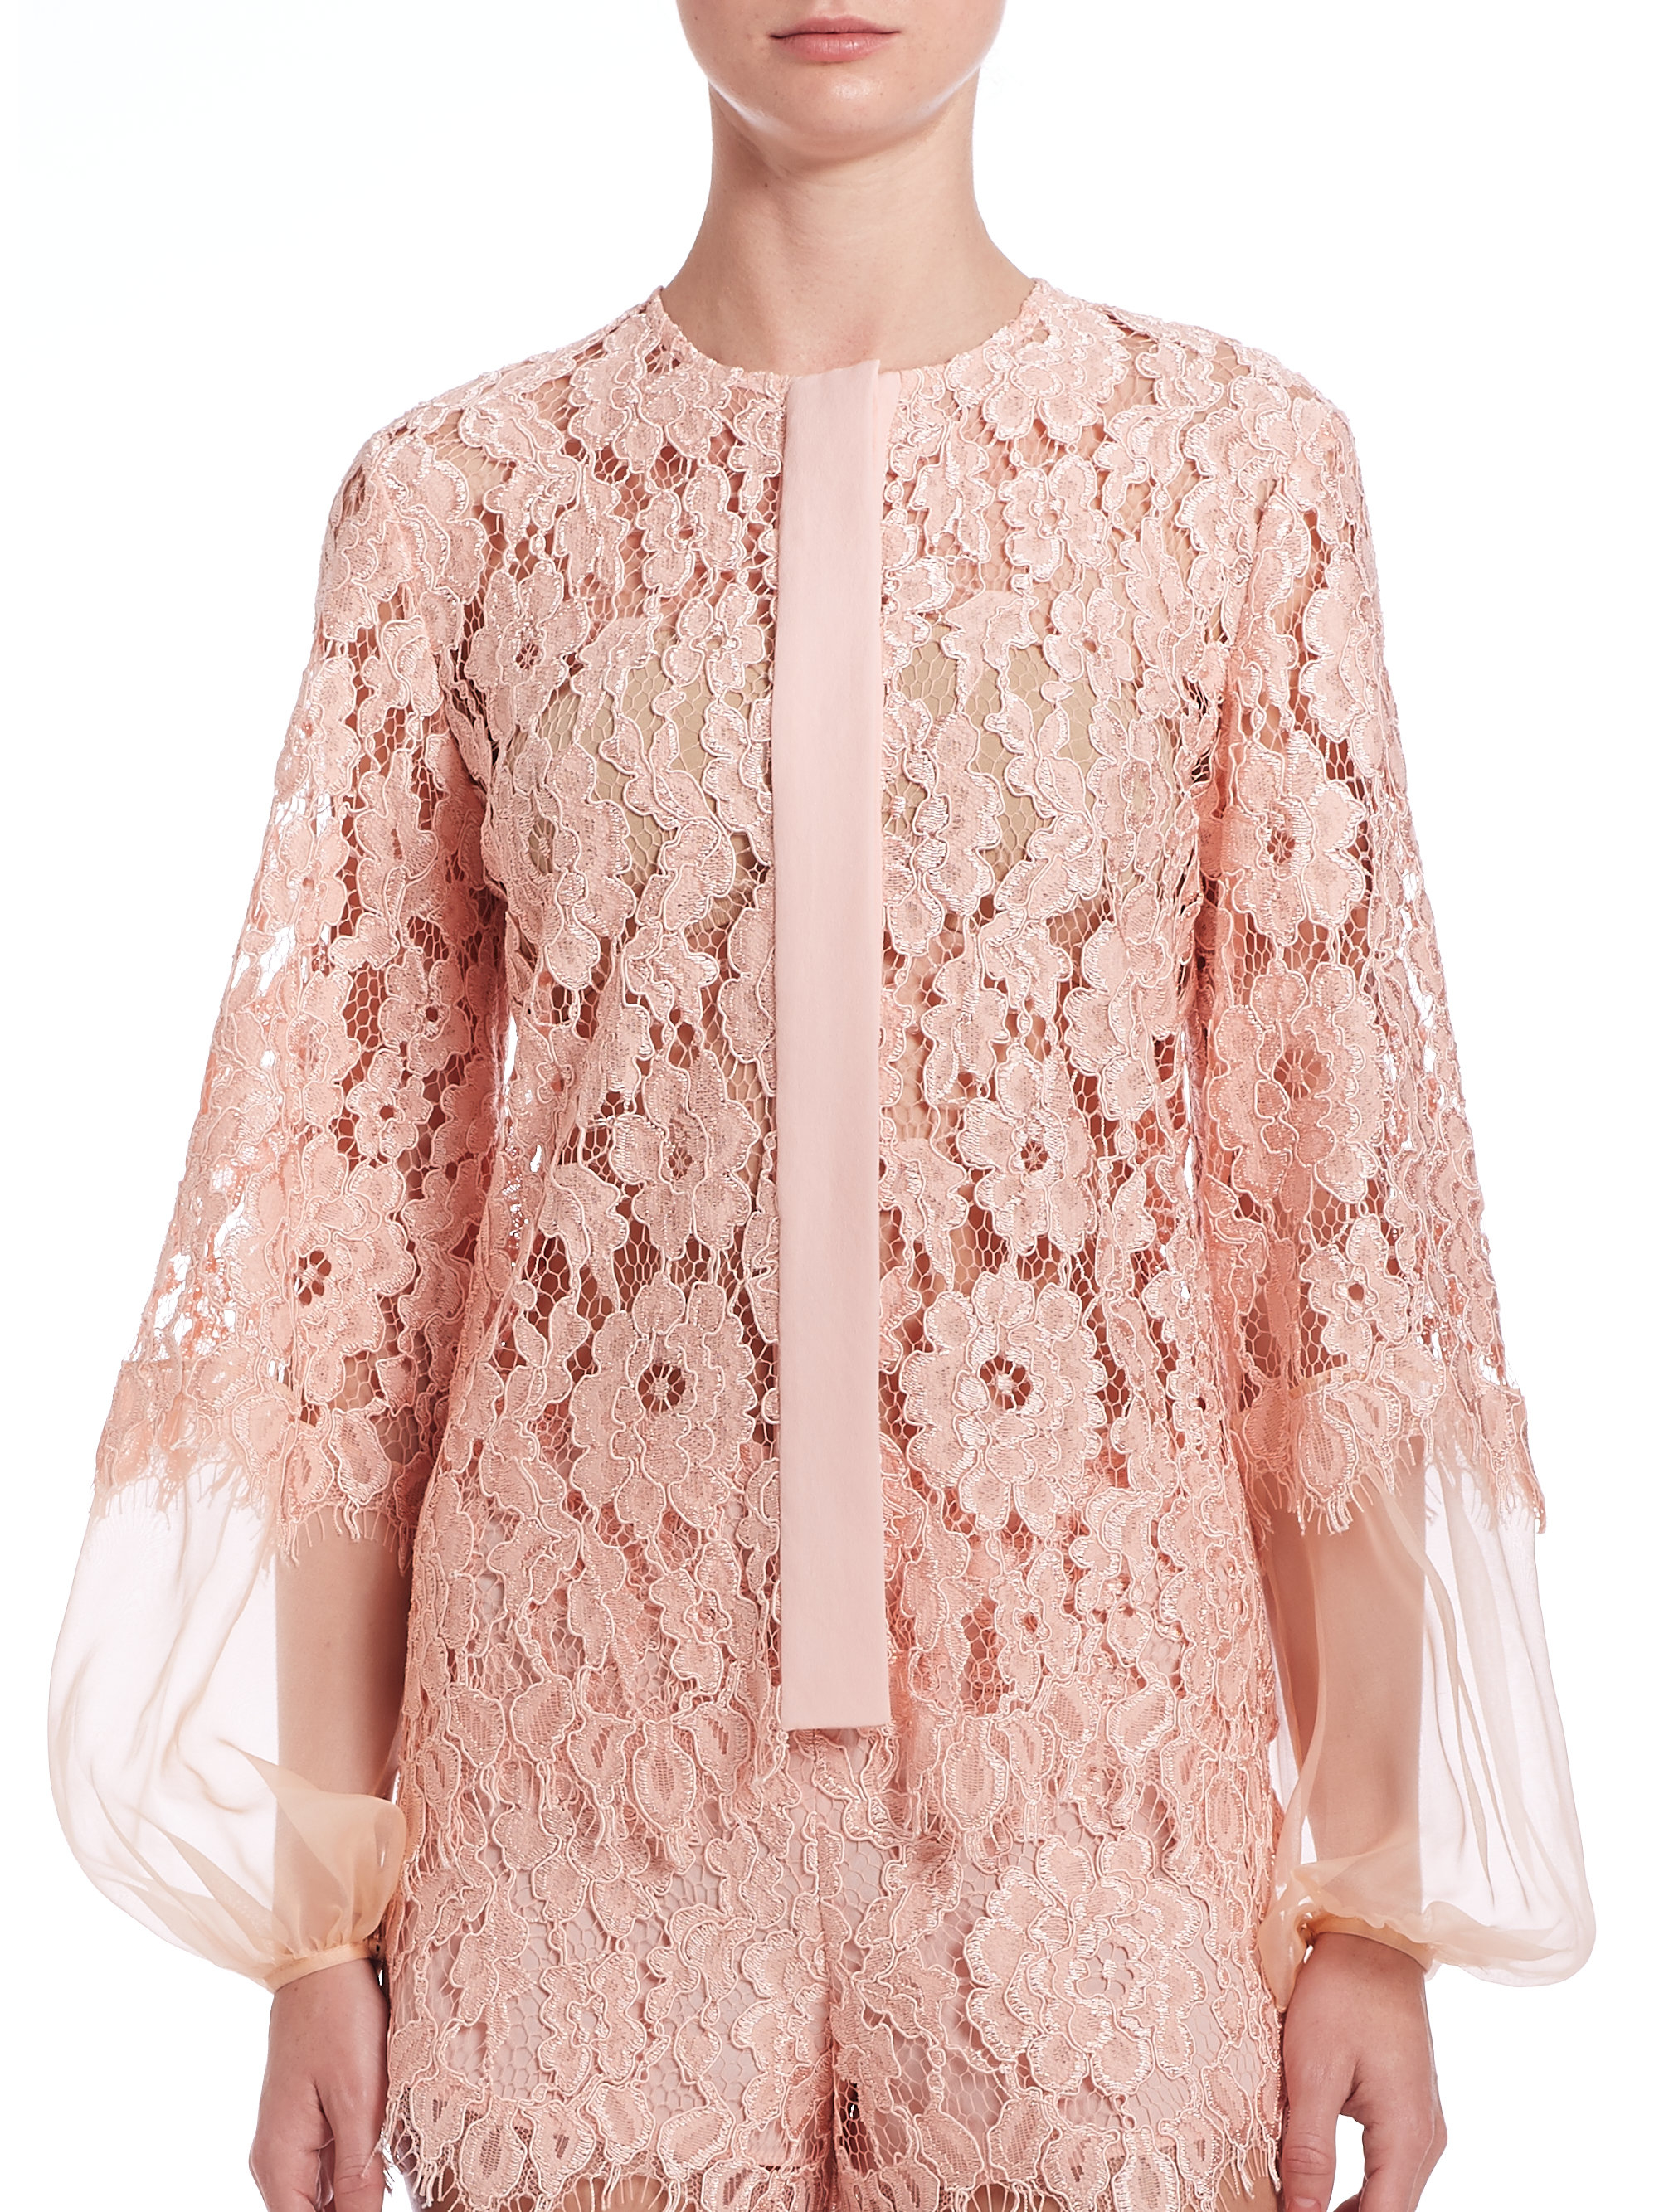 Images of Pink Lace Blouse - Reikian